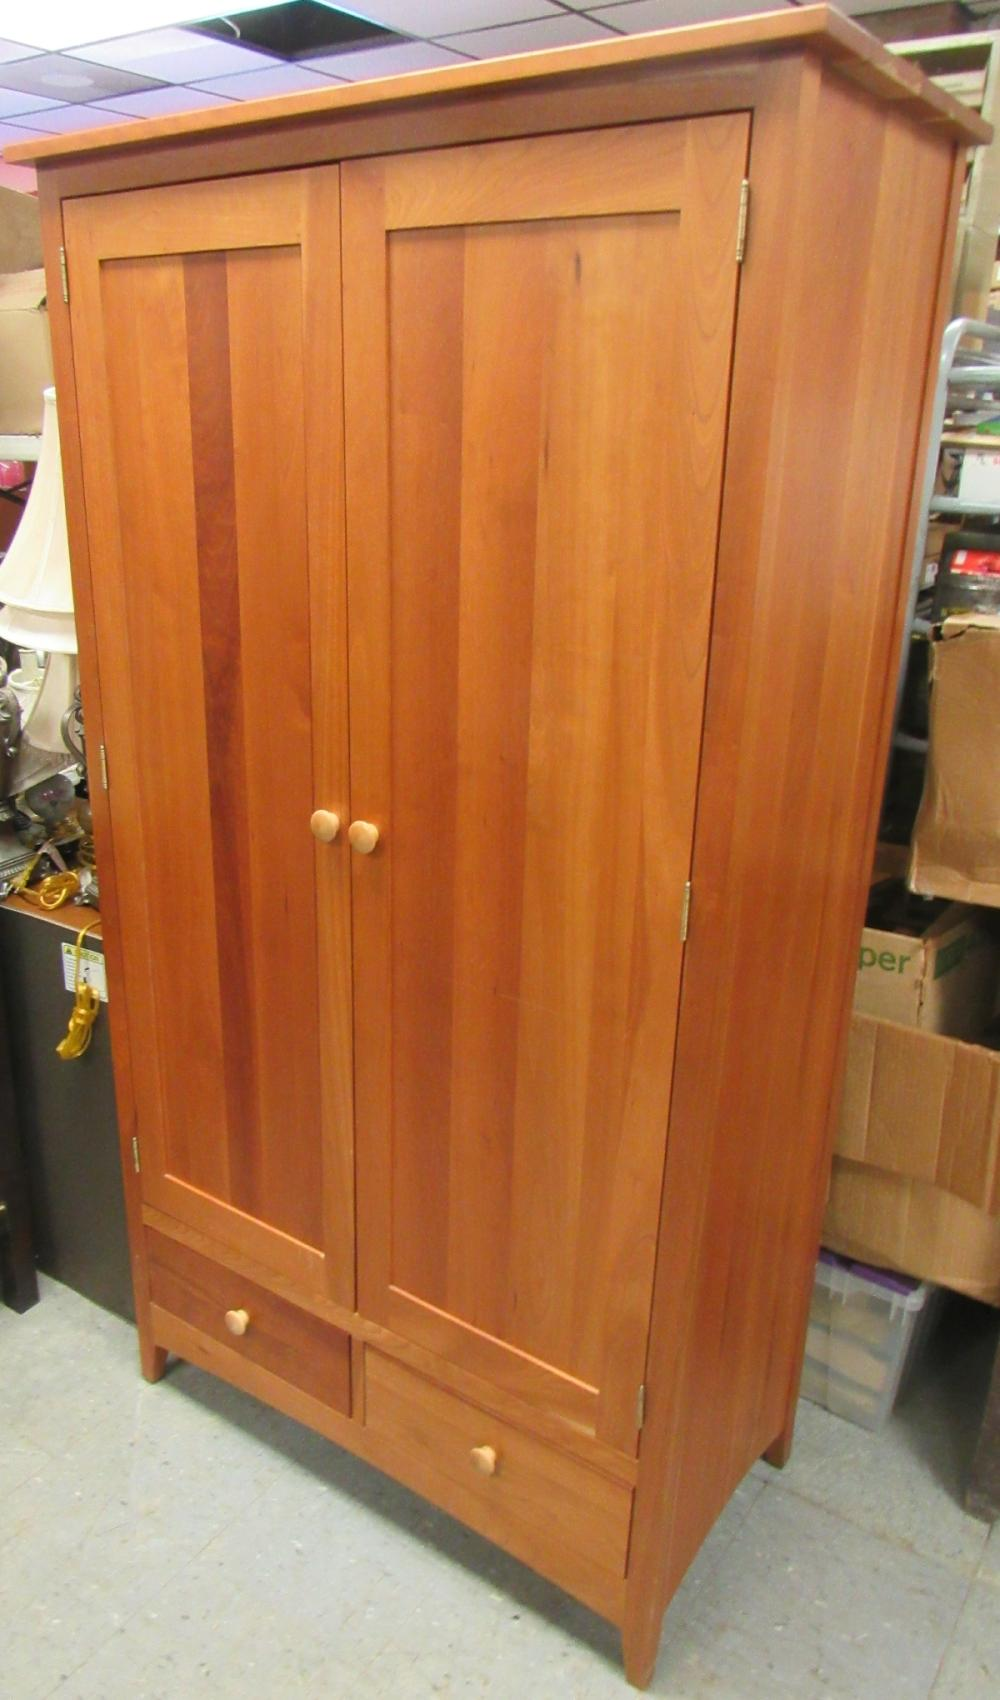 """Amish Made Solid Cherry Armoire Bedroom, 72""""H x 39""""W x 20""""D ,All Responsibility for Shipping will be the Successful Bidder. You must arrange for pickup directly or by a shipper within 7 days after sale."""